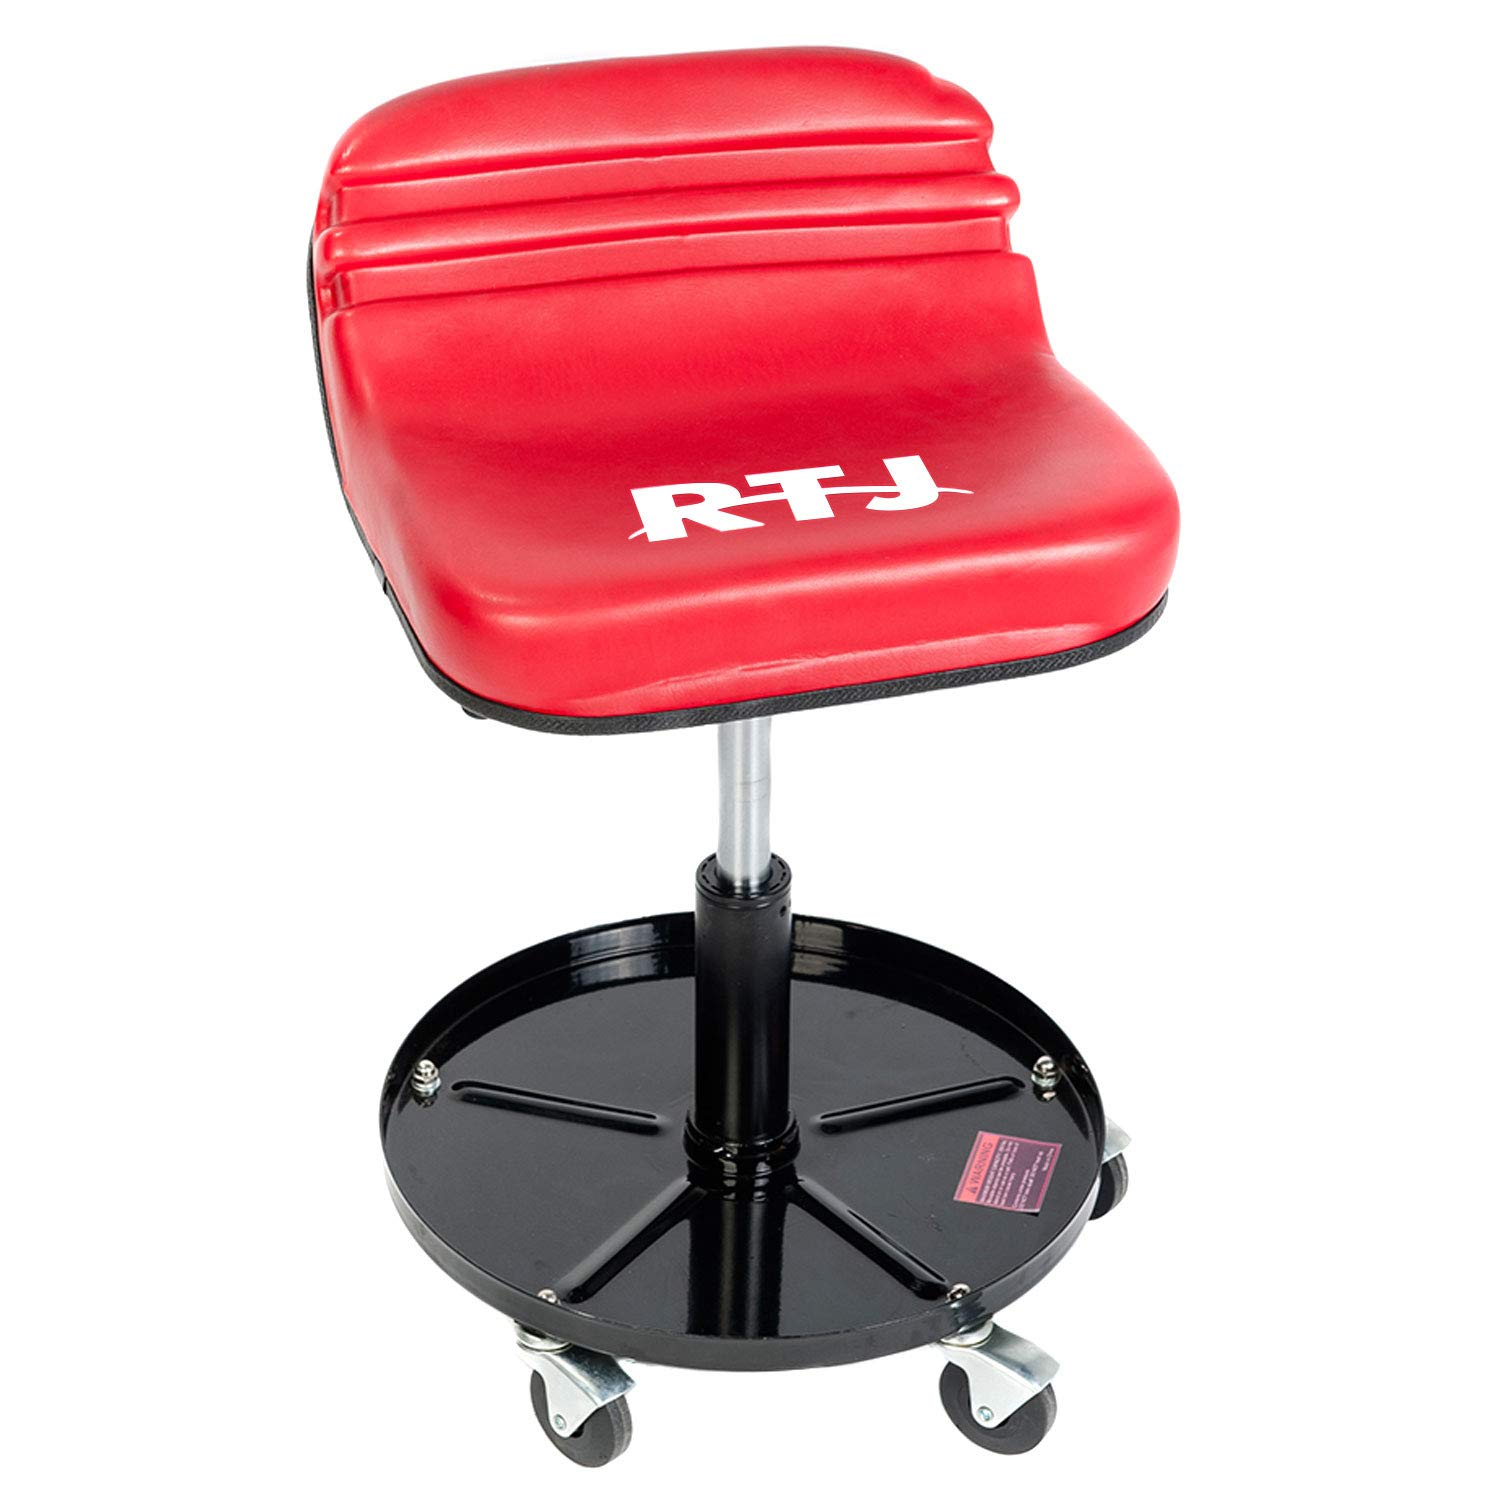 RTJ 300 lbs Capacity Pneumatic Mechanic Roller Seat Adjustable Rolling Stool, Red by RTJ